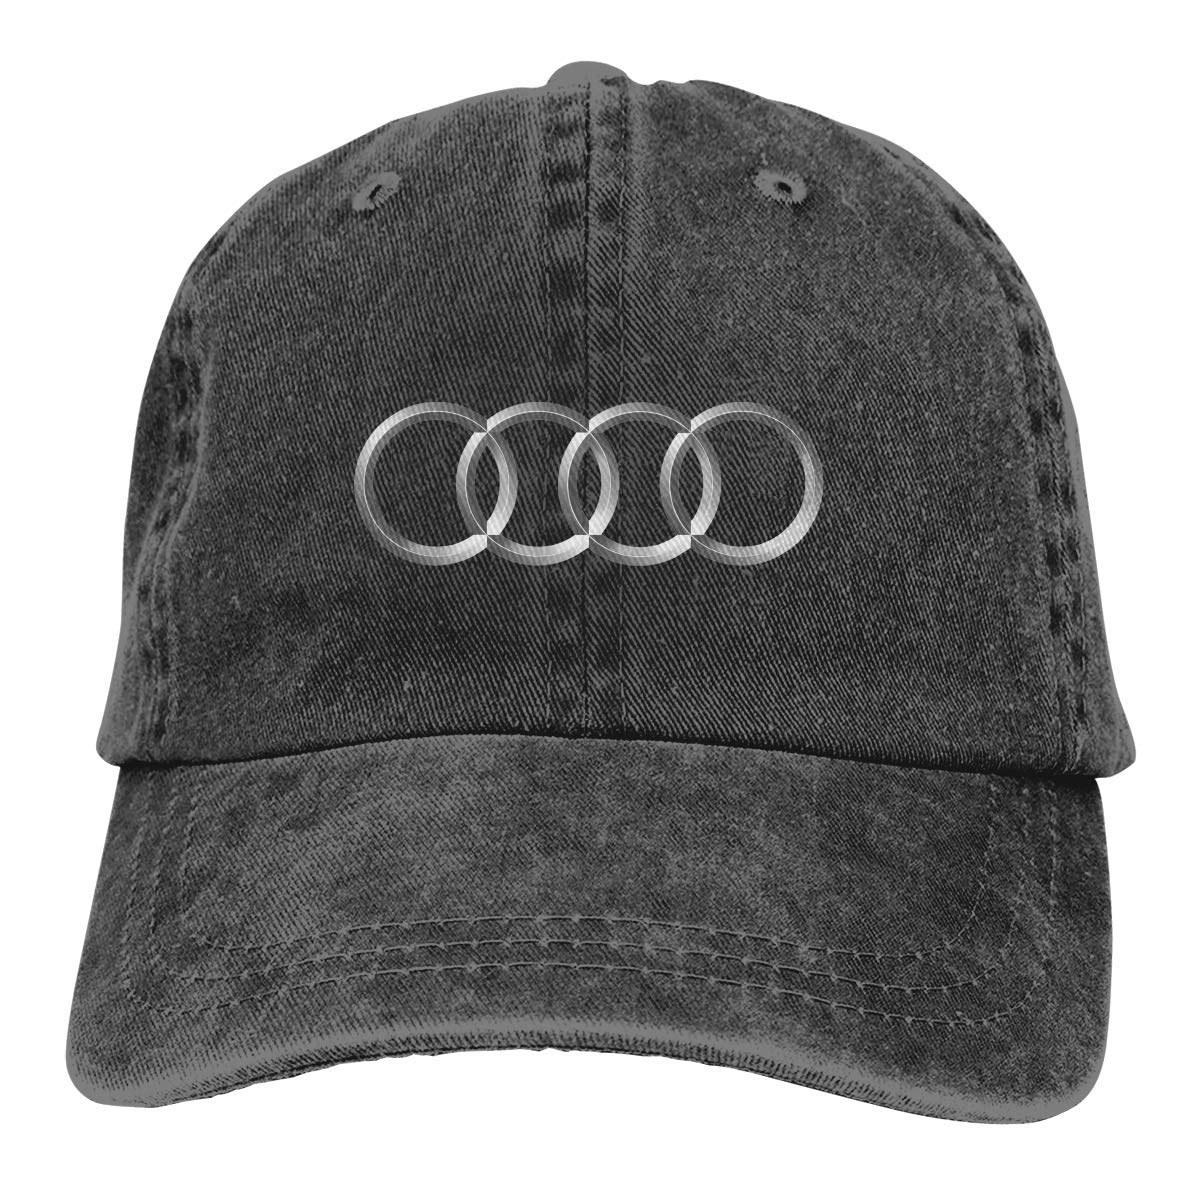 AASPOZ Unisex Vintage Adjustable Dad-Hat Audi Logo Sports Cap ...